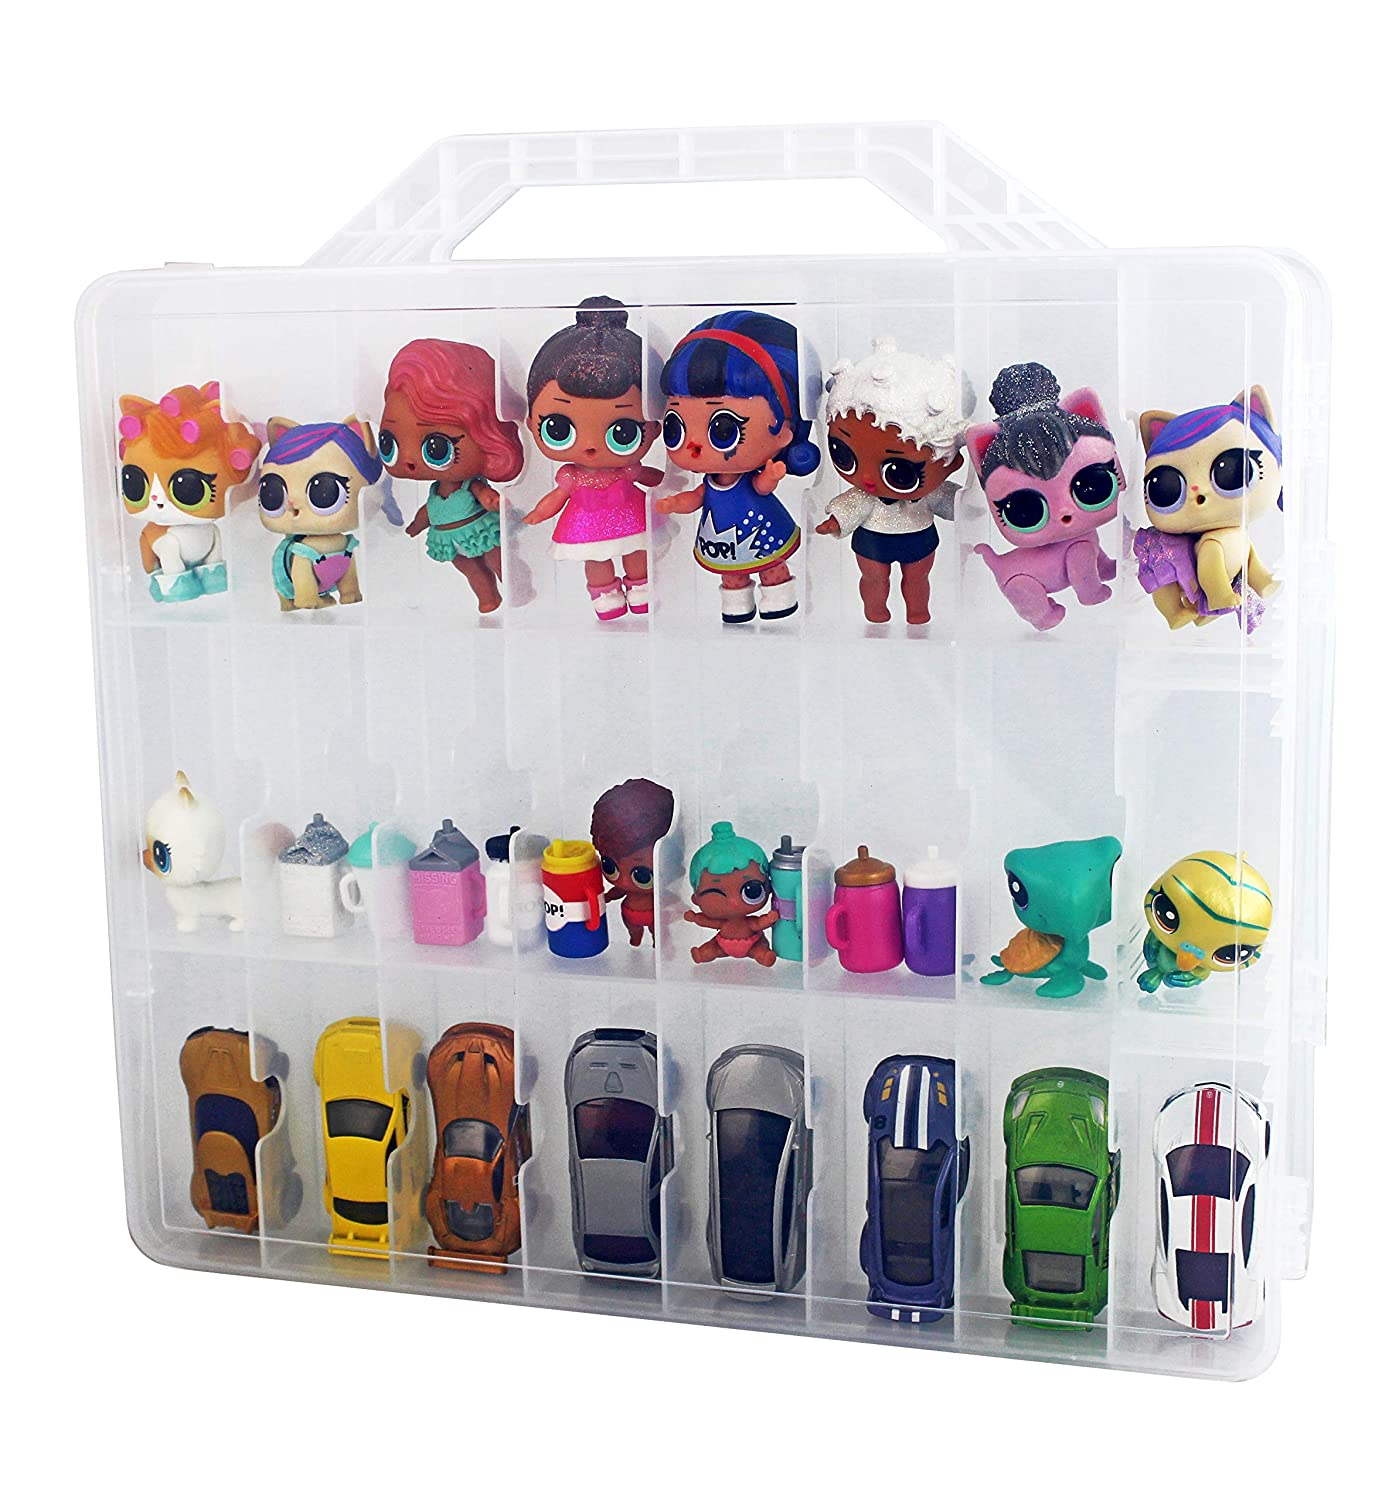 Bins & Things Toys Organizer Storage Case with 48 Compartments Compatible with LOL Surprise Dolls, Hot Wheels, LPS Figures and Shopkins